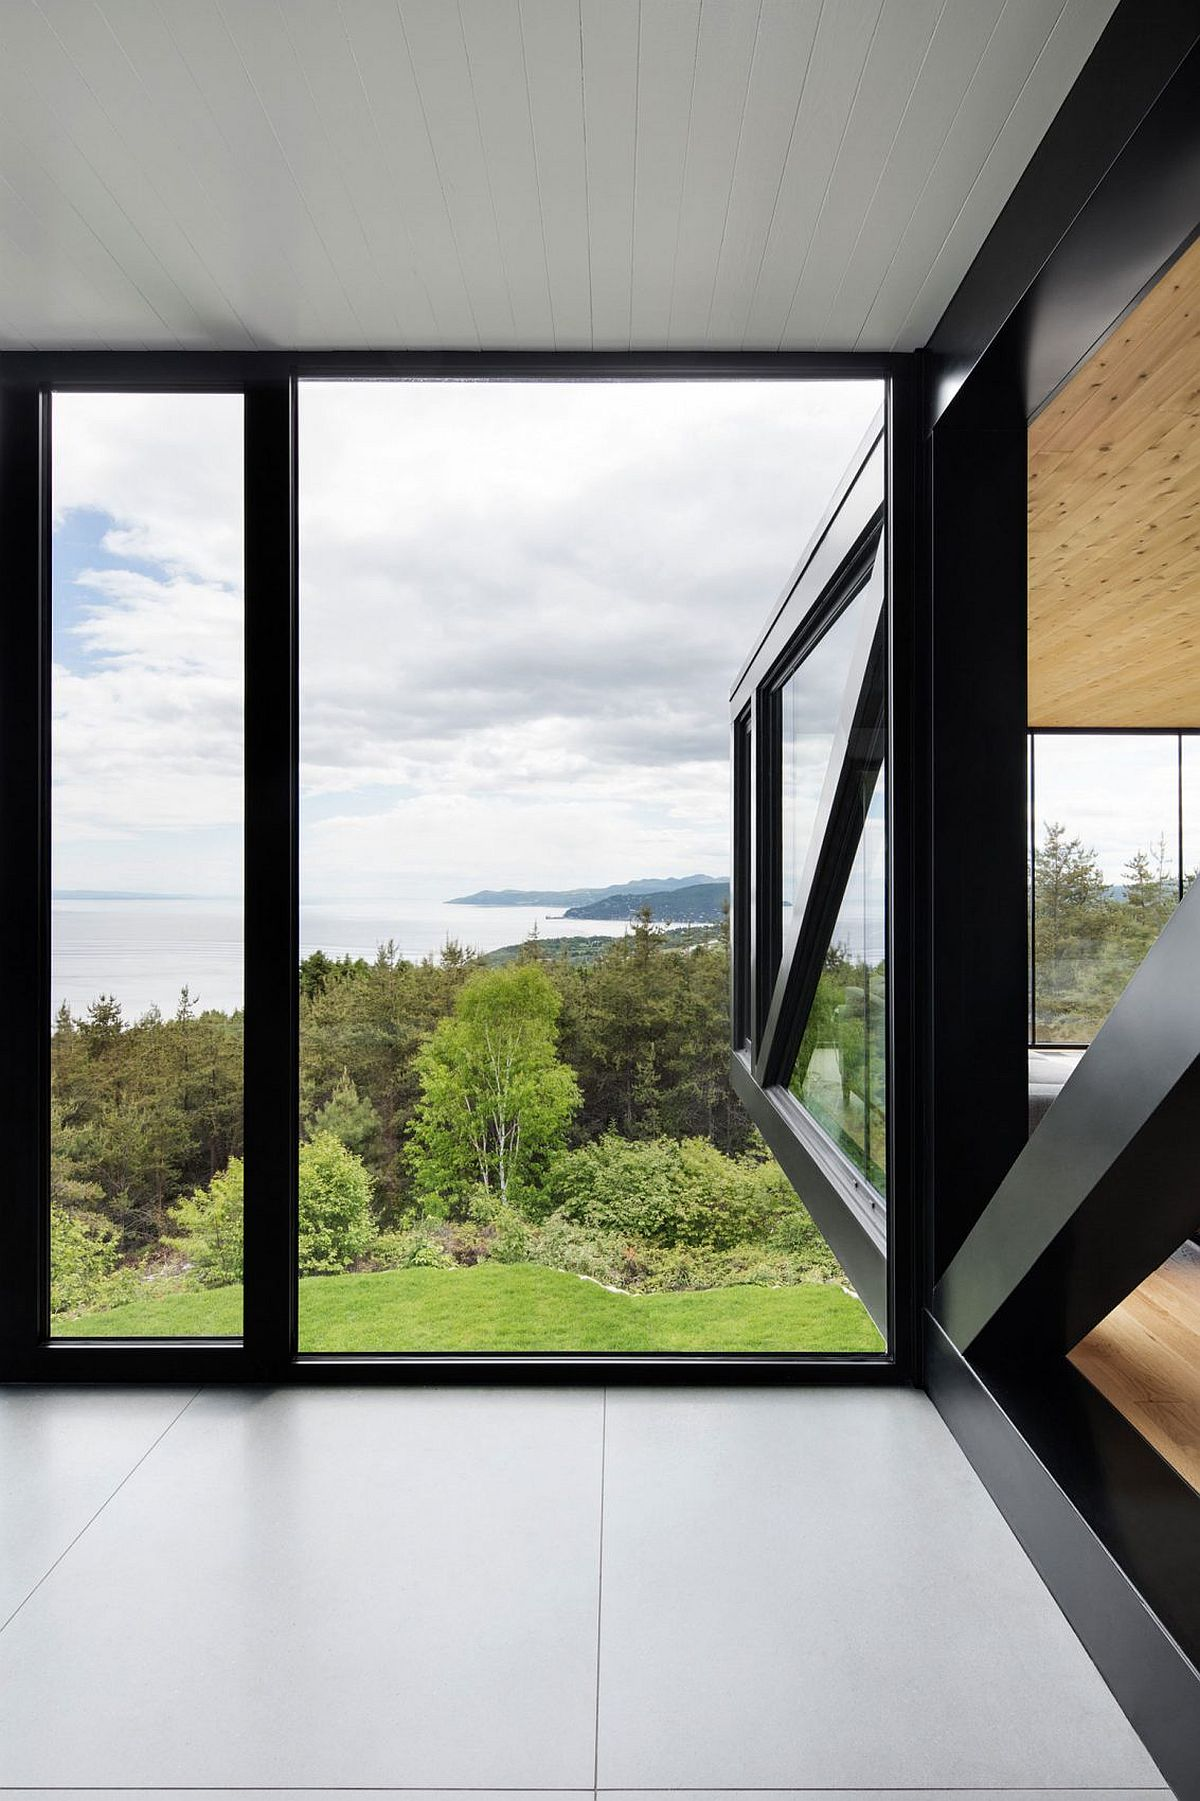 Captivating view of Cap à l'Aigle from the modern chalet in La Malbaie